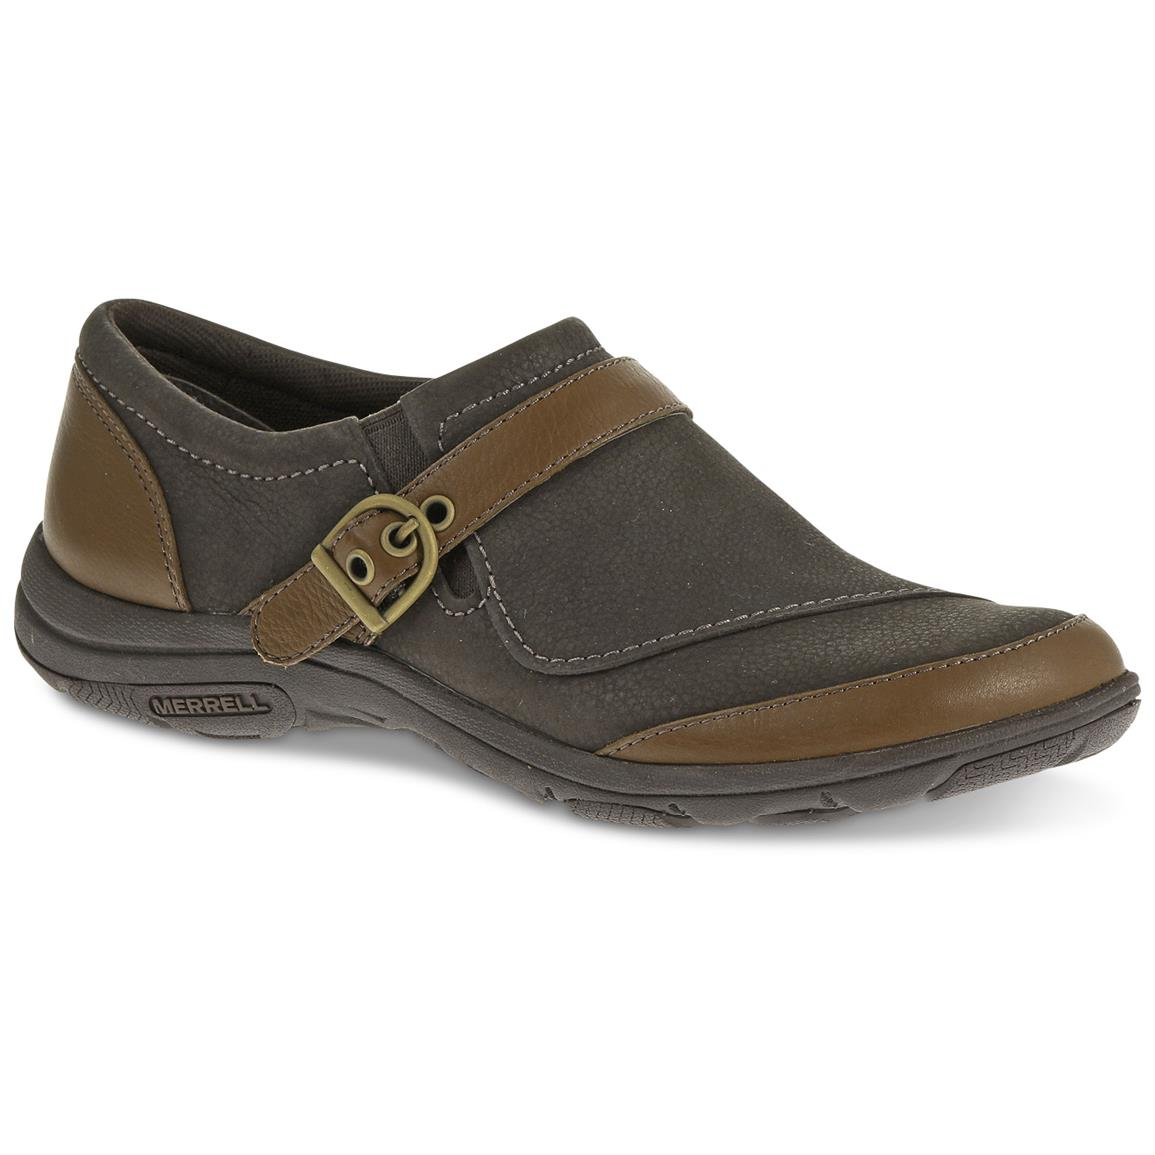 Merrell Women's Dassie Buckle Casual Shoes, Brown / Charcoal